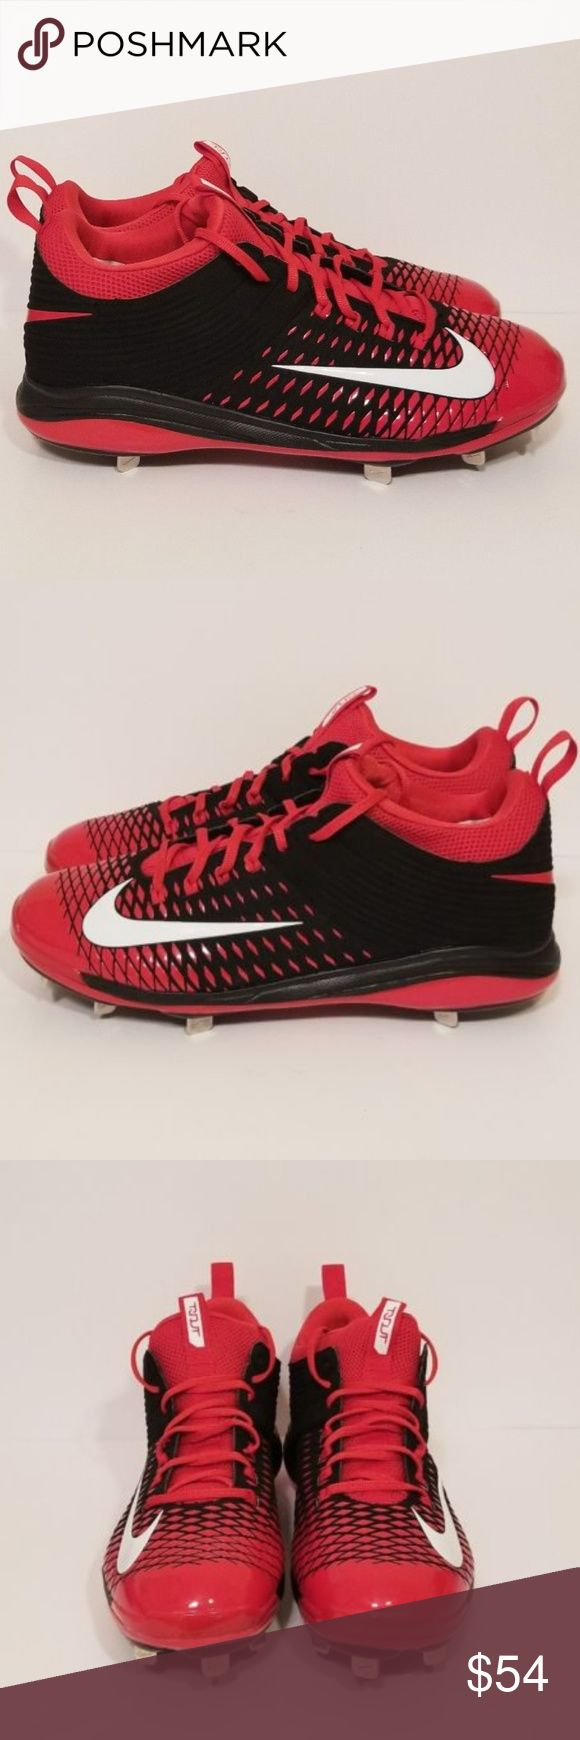 Mens Nike Mike Trout Baseball Metal Cleats Size 13 Mens Nike Mike Trout Baseball Metal Cleats Size 13 US Pro 2 Spikes Red Black New  Model - 807133-016  Size 13 Mens US  New without box   Many of our sneakers may have been tried on in store, but have never left the store being worn.   **Many of our shoes are marked with an inventory number on the bottom of one of the shoes.   Shipping:   All orders are shipped on the next business day if placed before 3pm. Nike Shoes Athletic Shoes